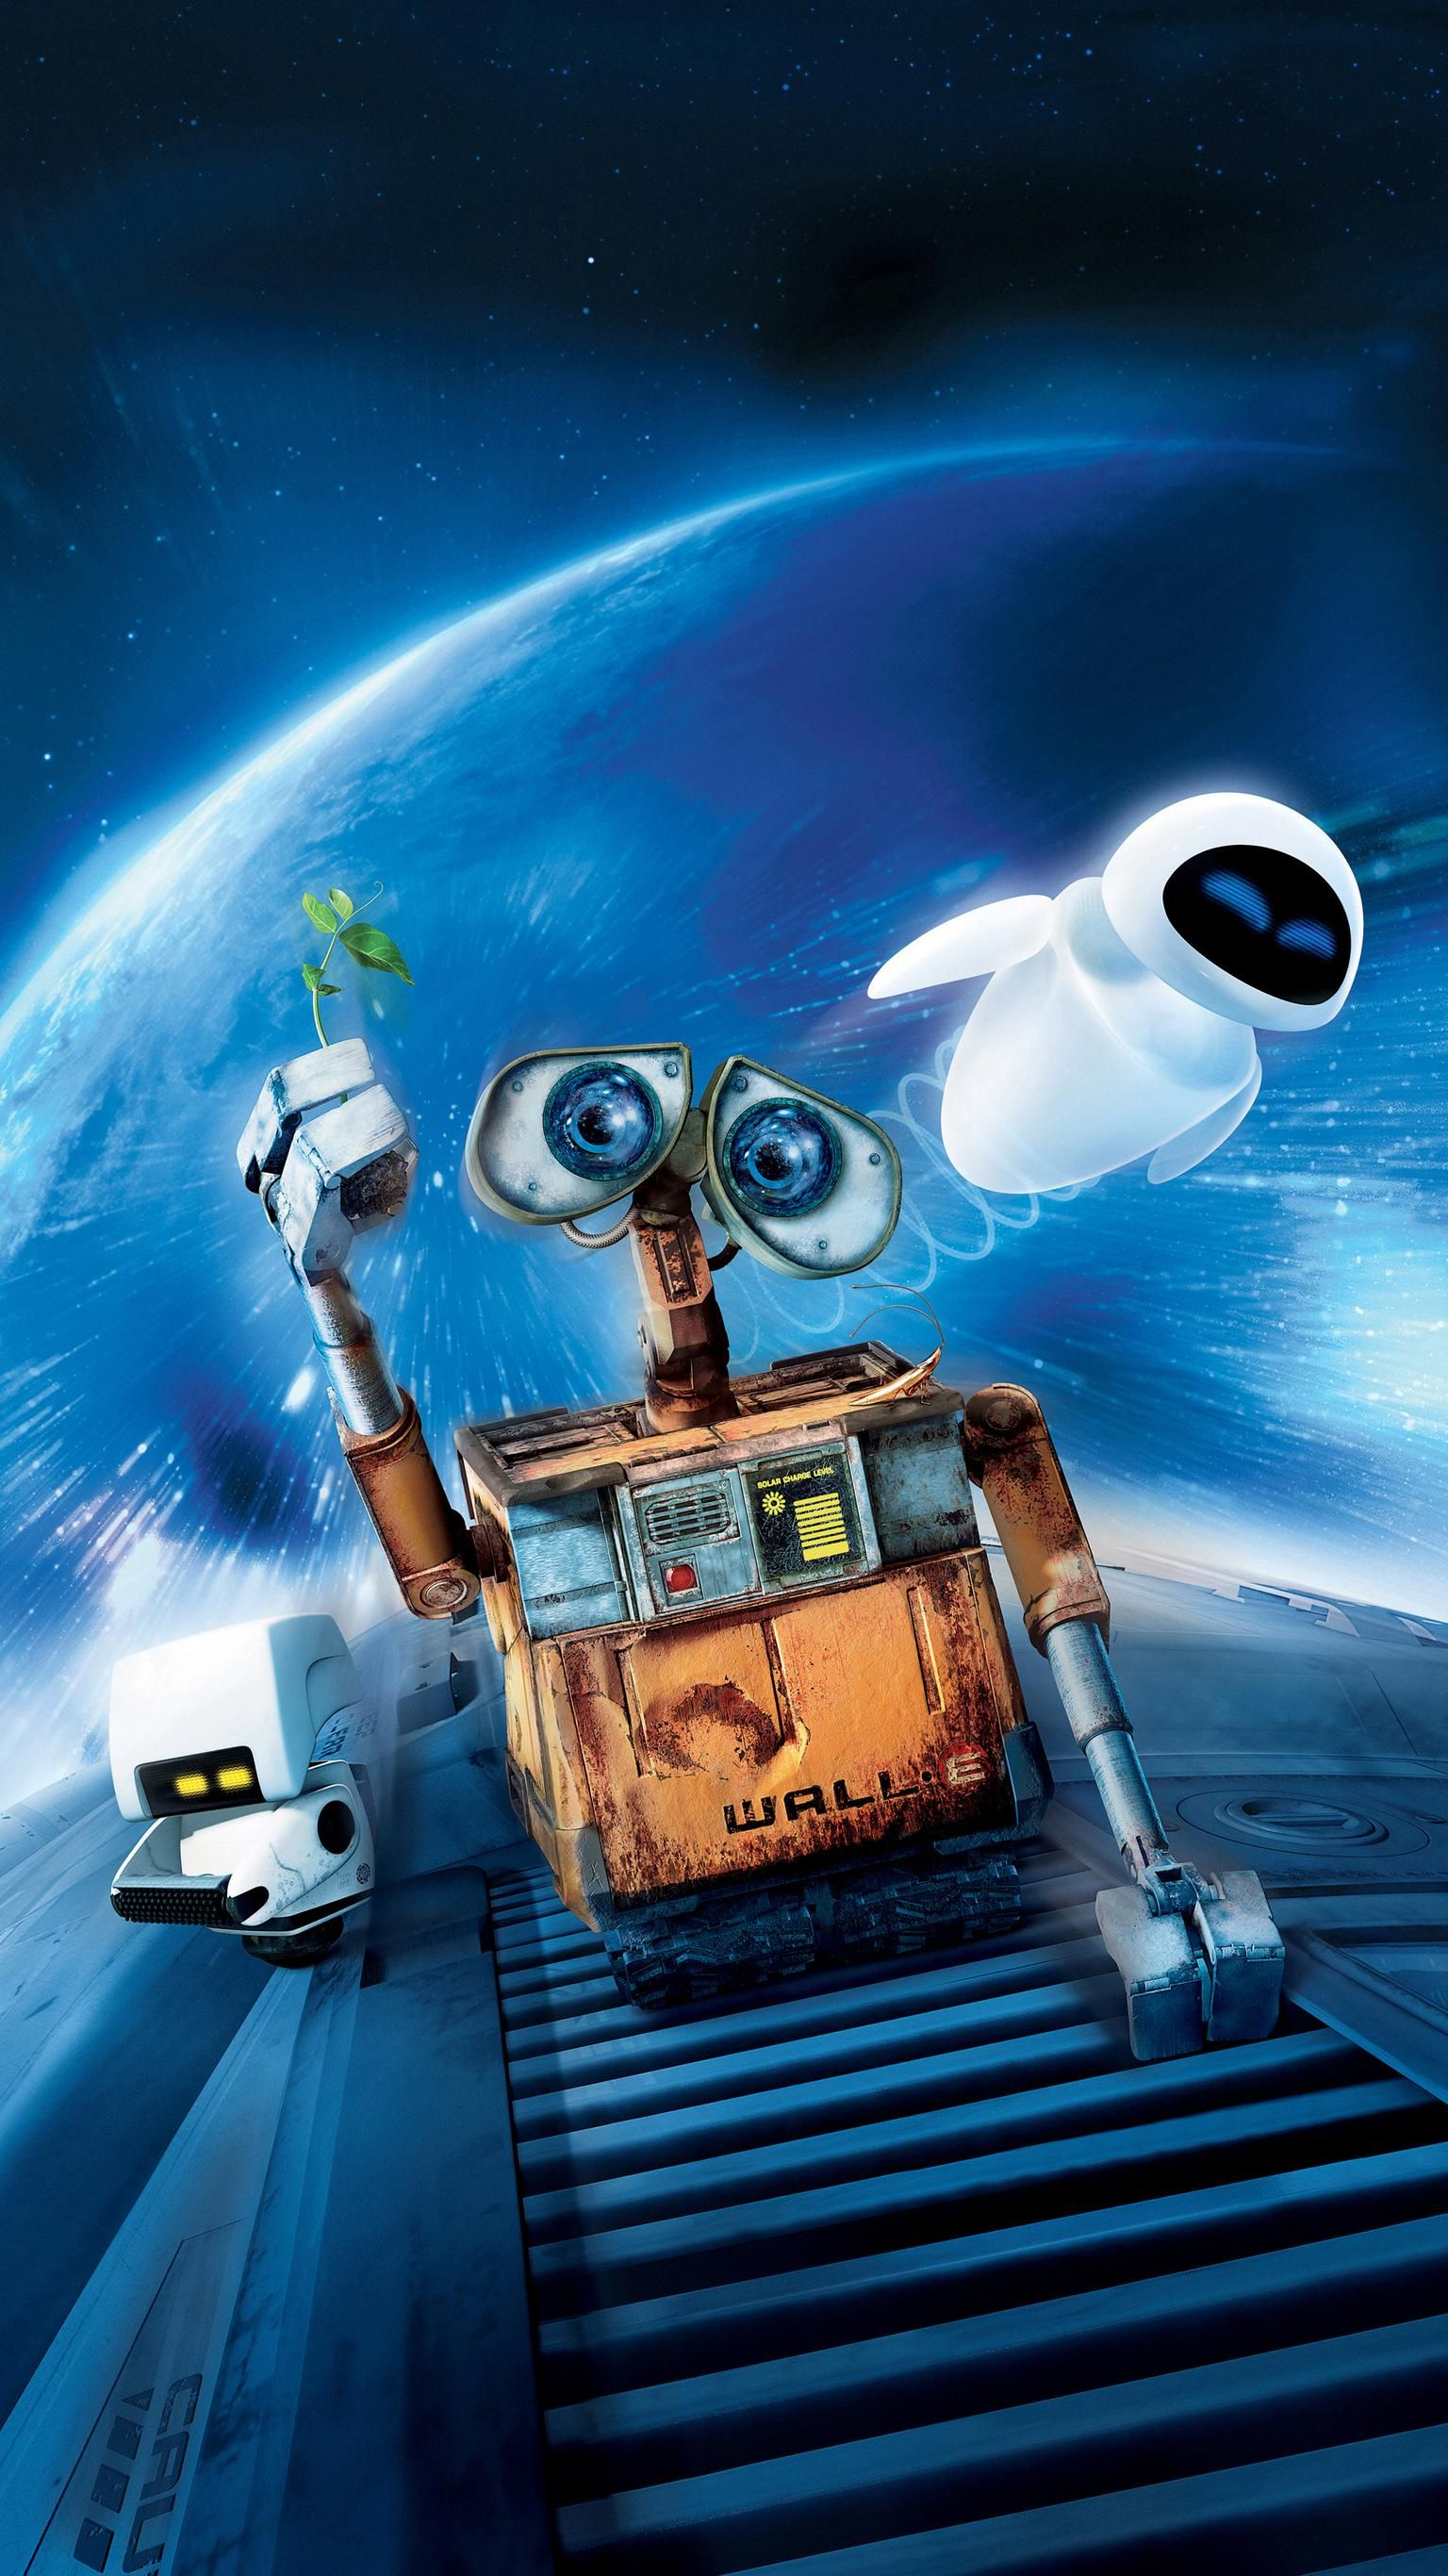 WALLE. This is one of the CUTEST movies ever made, and a